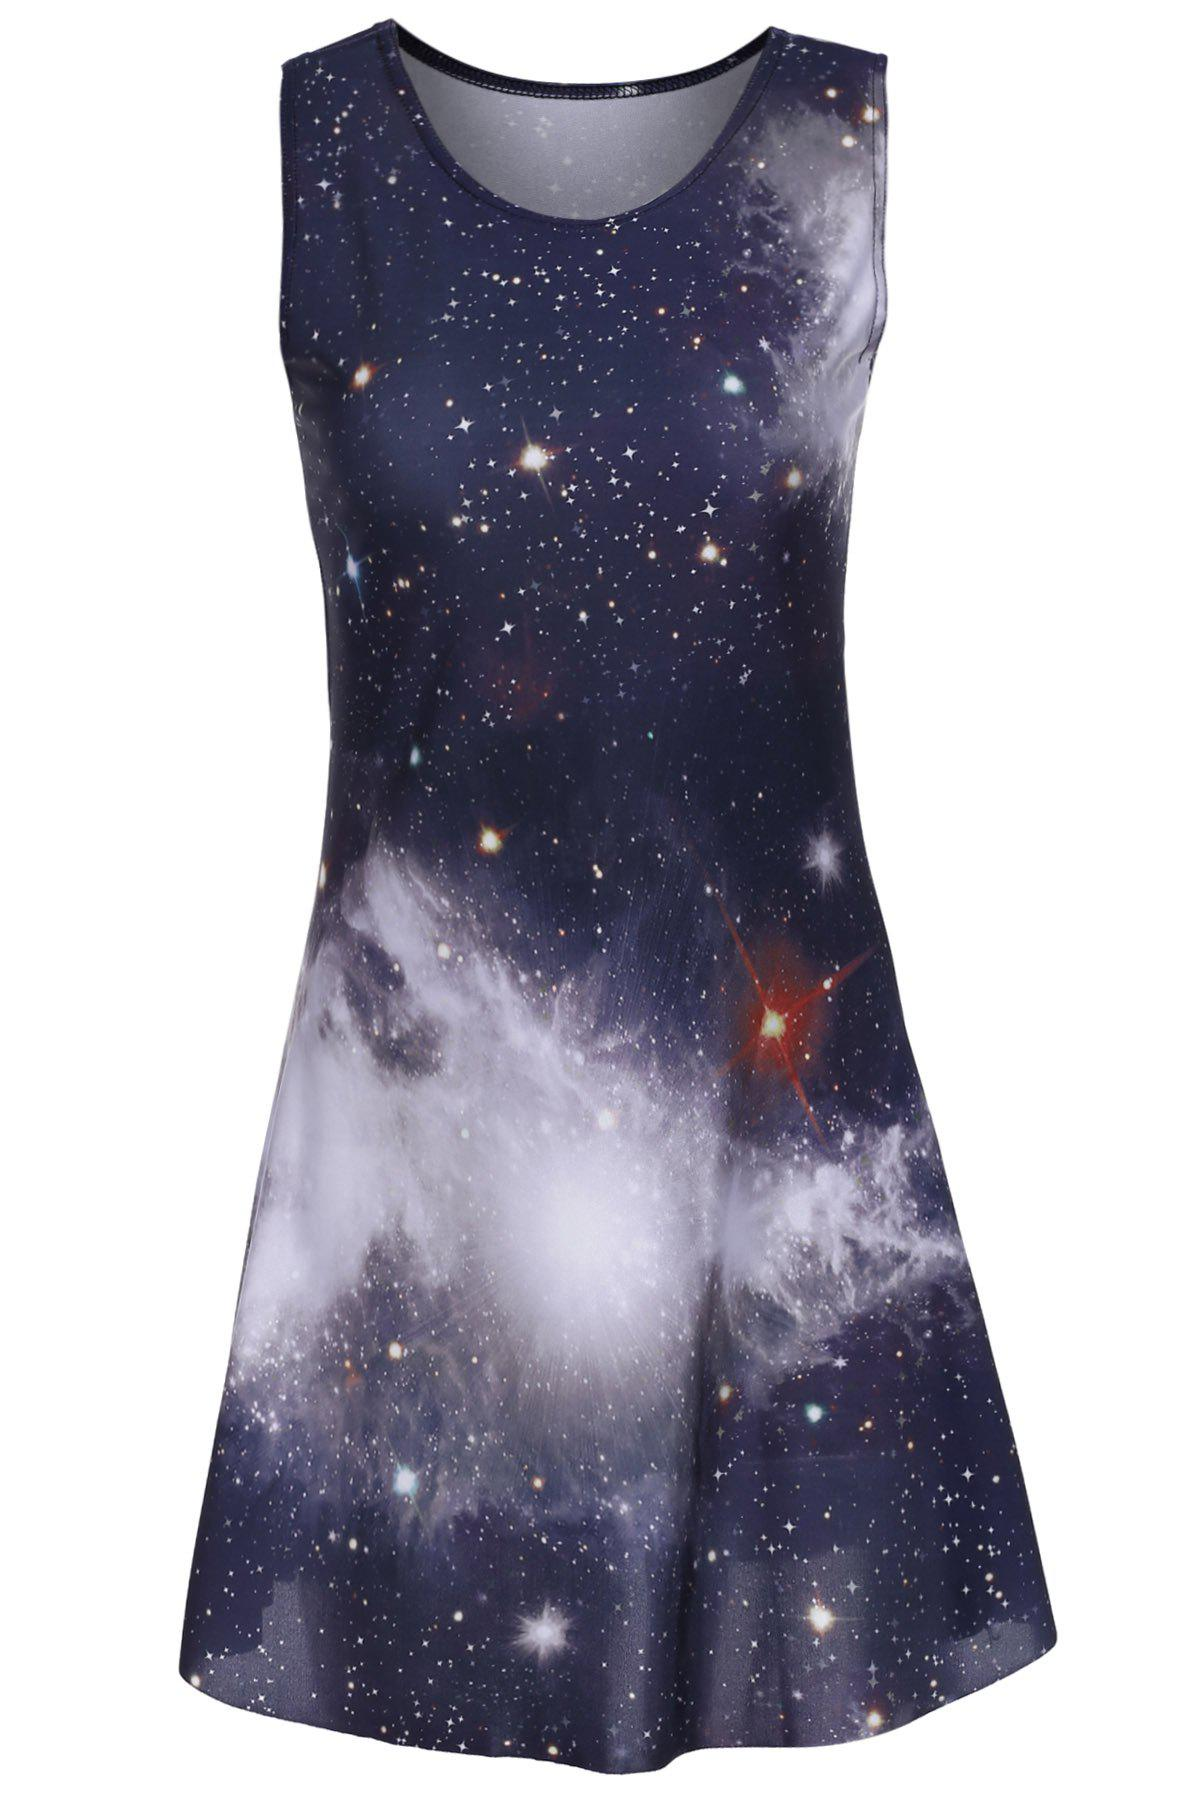 Trendy Women's Scoop Neck Sleeveless Galaxy Printed Dress - BLACK ONE SIZE(FIT SIZE XS TO M)